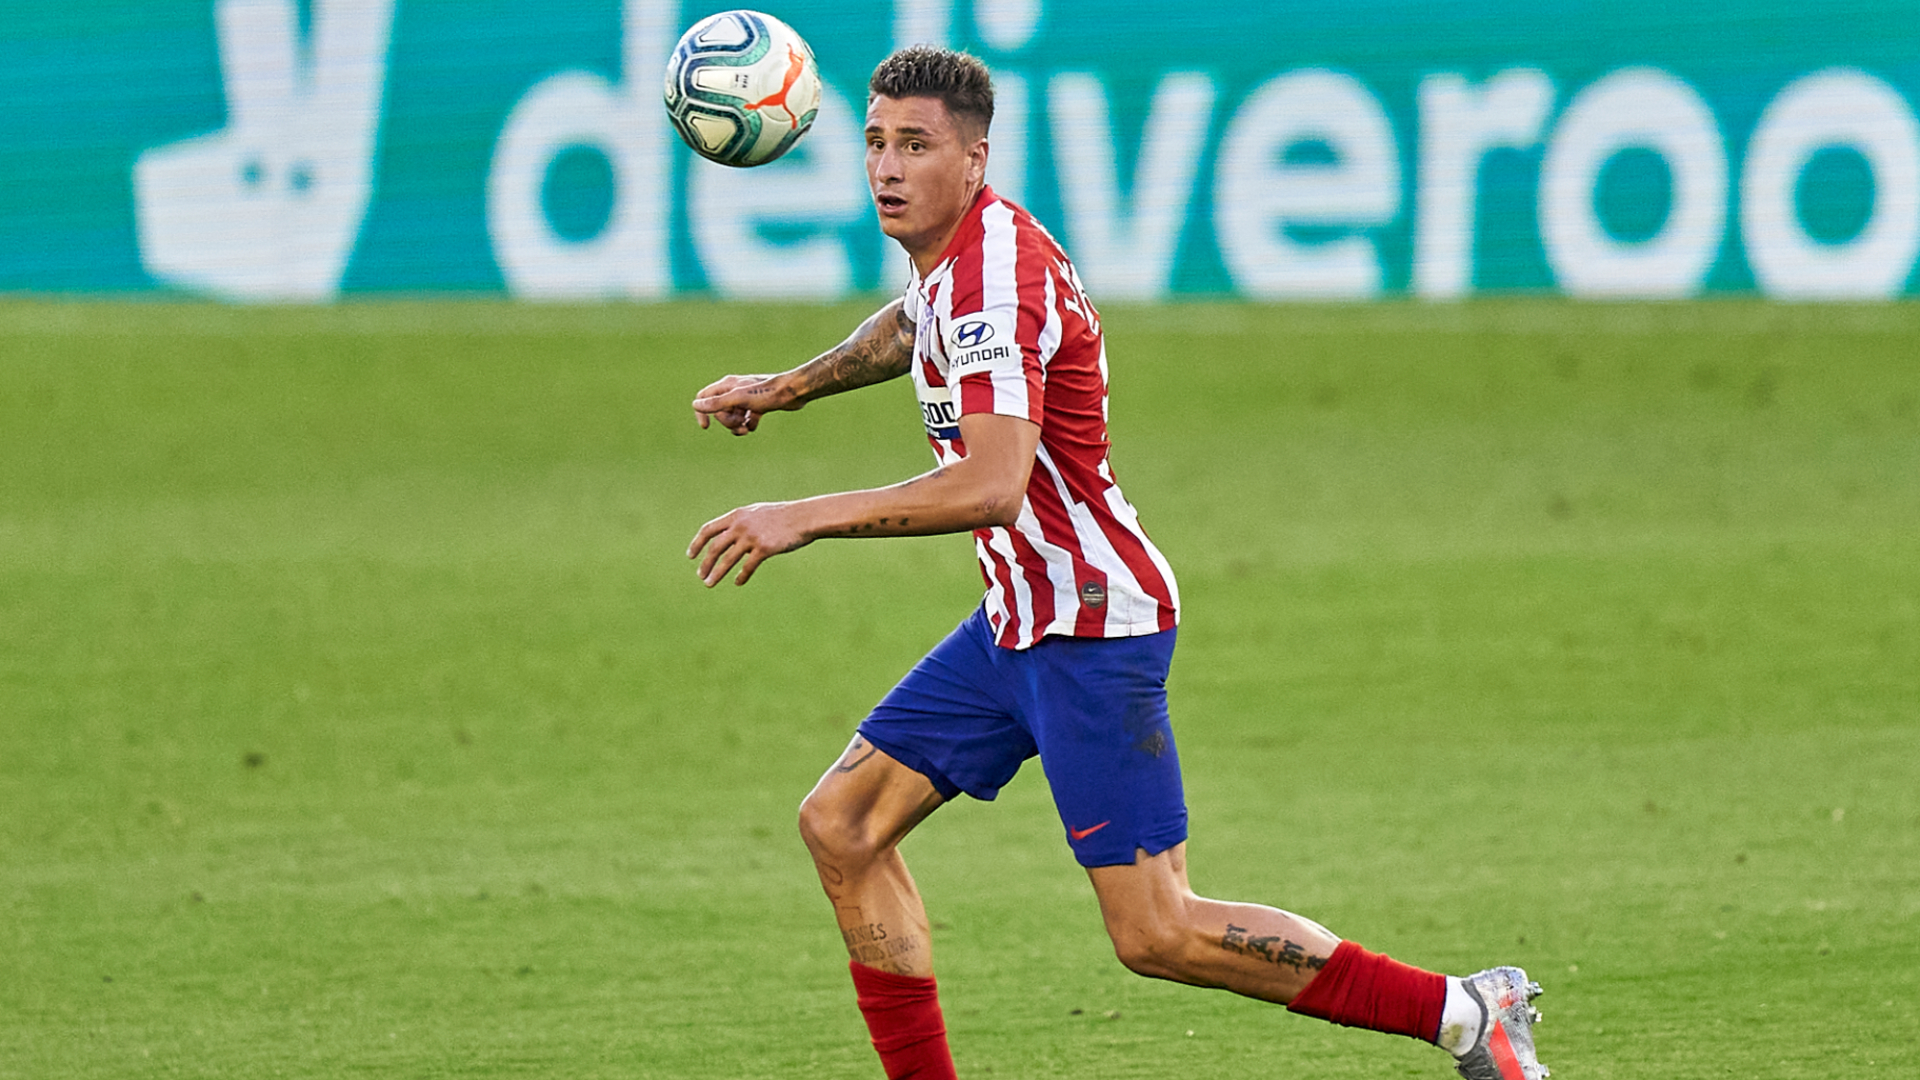 Atletico rejected €85m offer from Man City for Gimenez, says club president